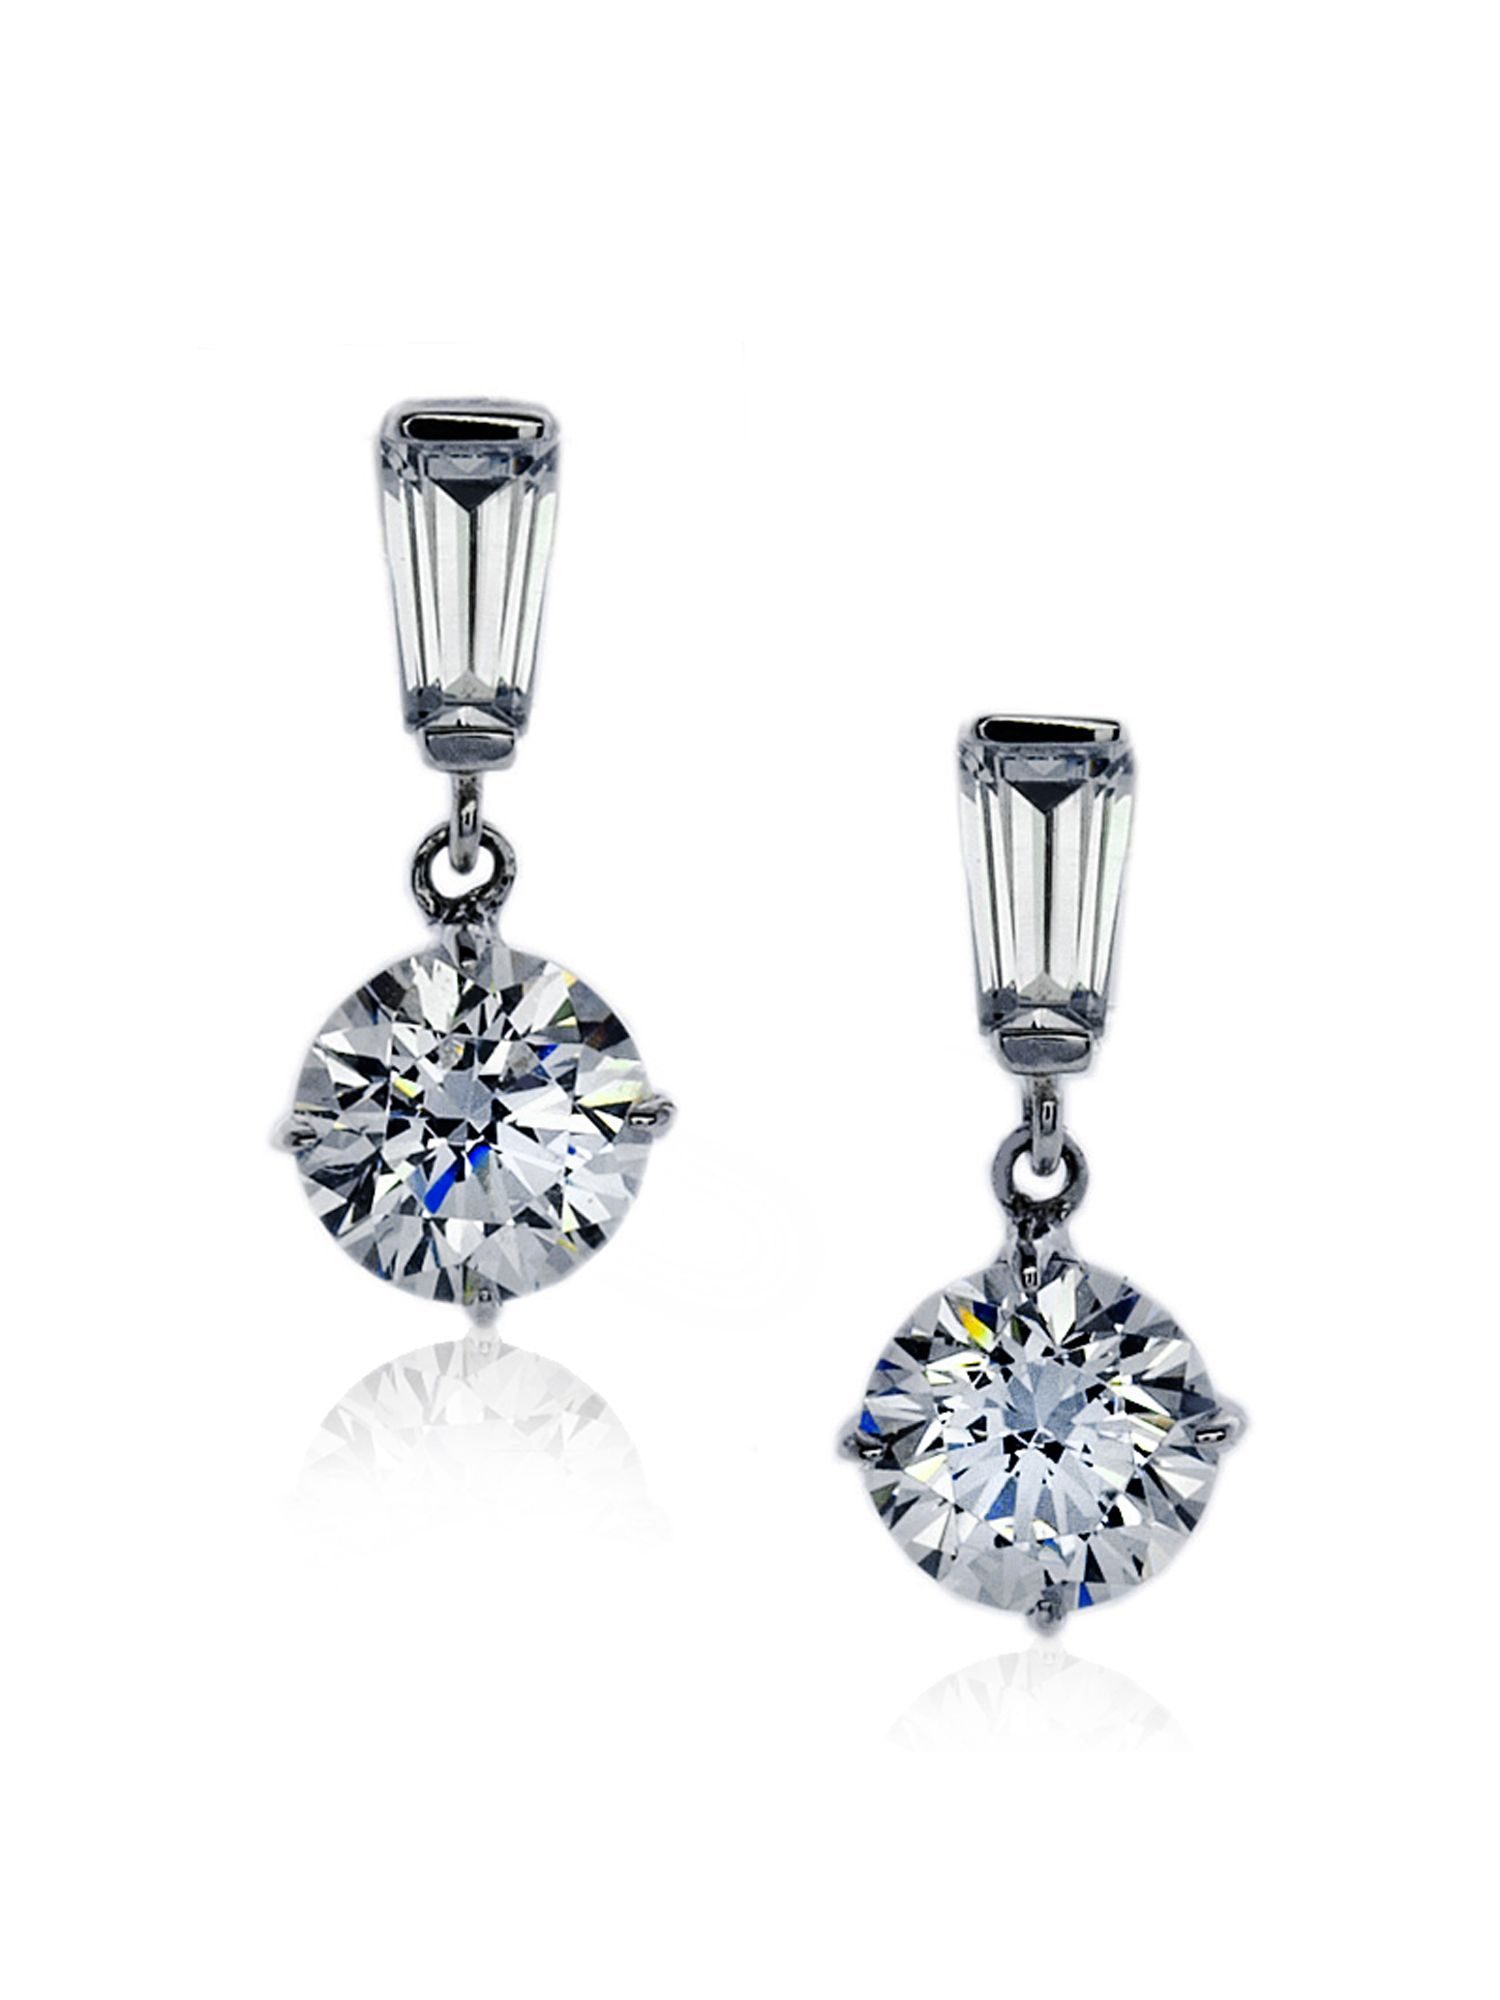 2ct Baguette Brilliant Round Drop Earrings